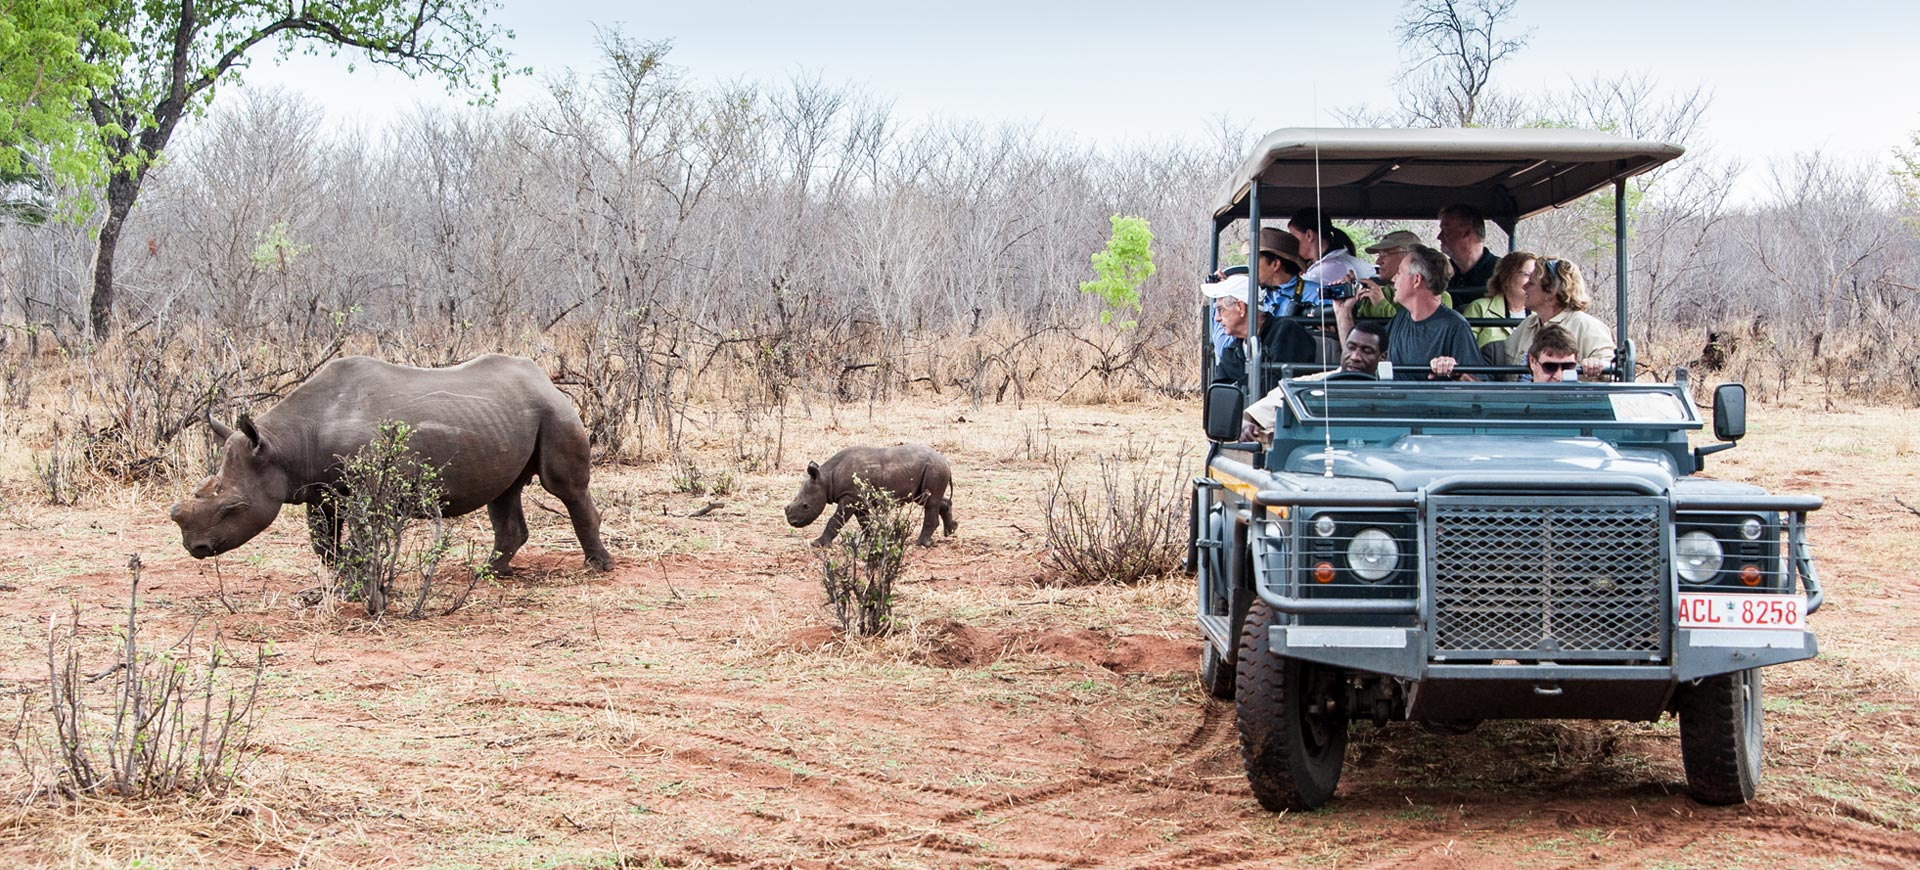 Game Drive At Victoria Falls Conference